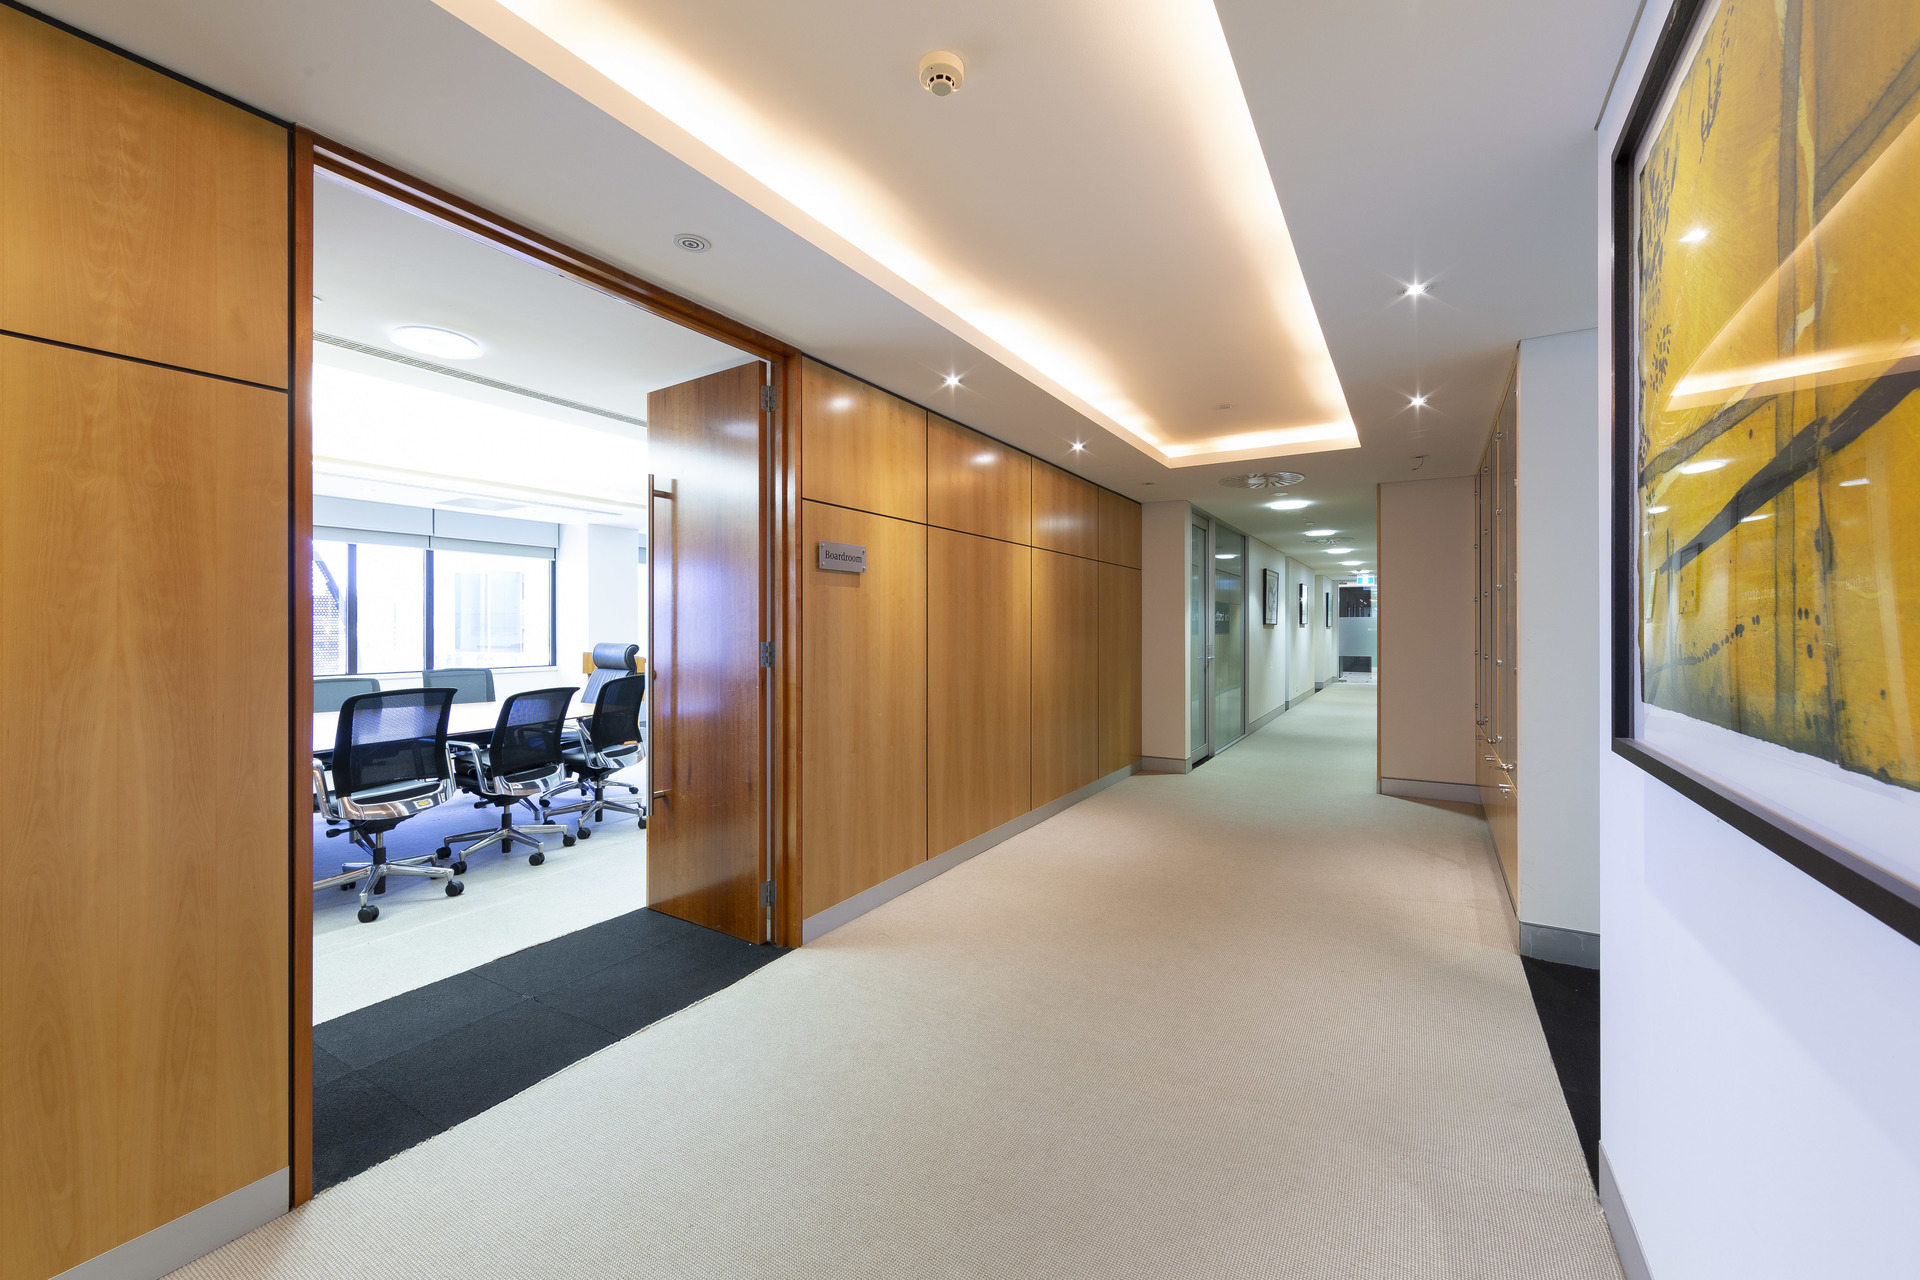 HIGH QUALITY FITTED OUT OFFICE SPACE